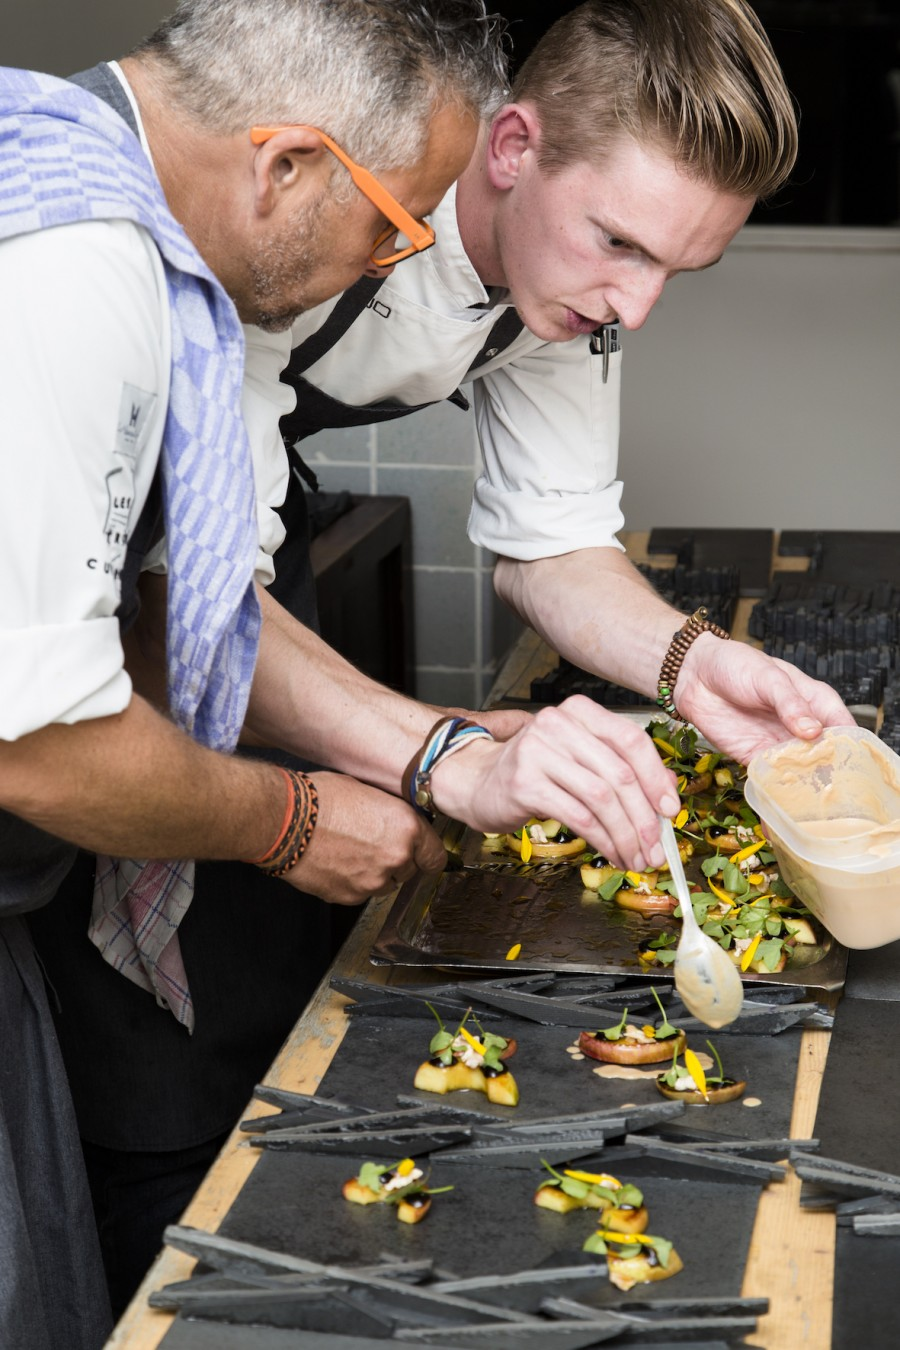 Edwin Vinke and Nino Willems setting grapes, apples, nuts, sunchoke and sorrel on slate plates by Matthias Dyer